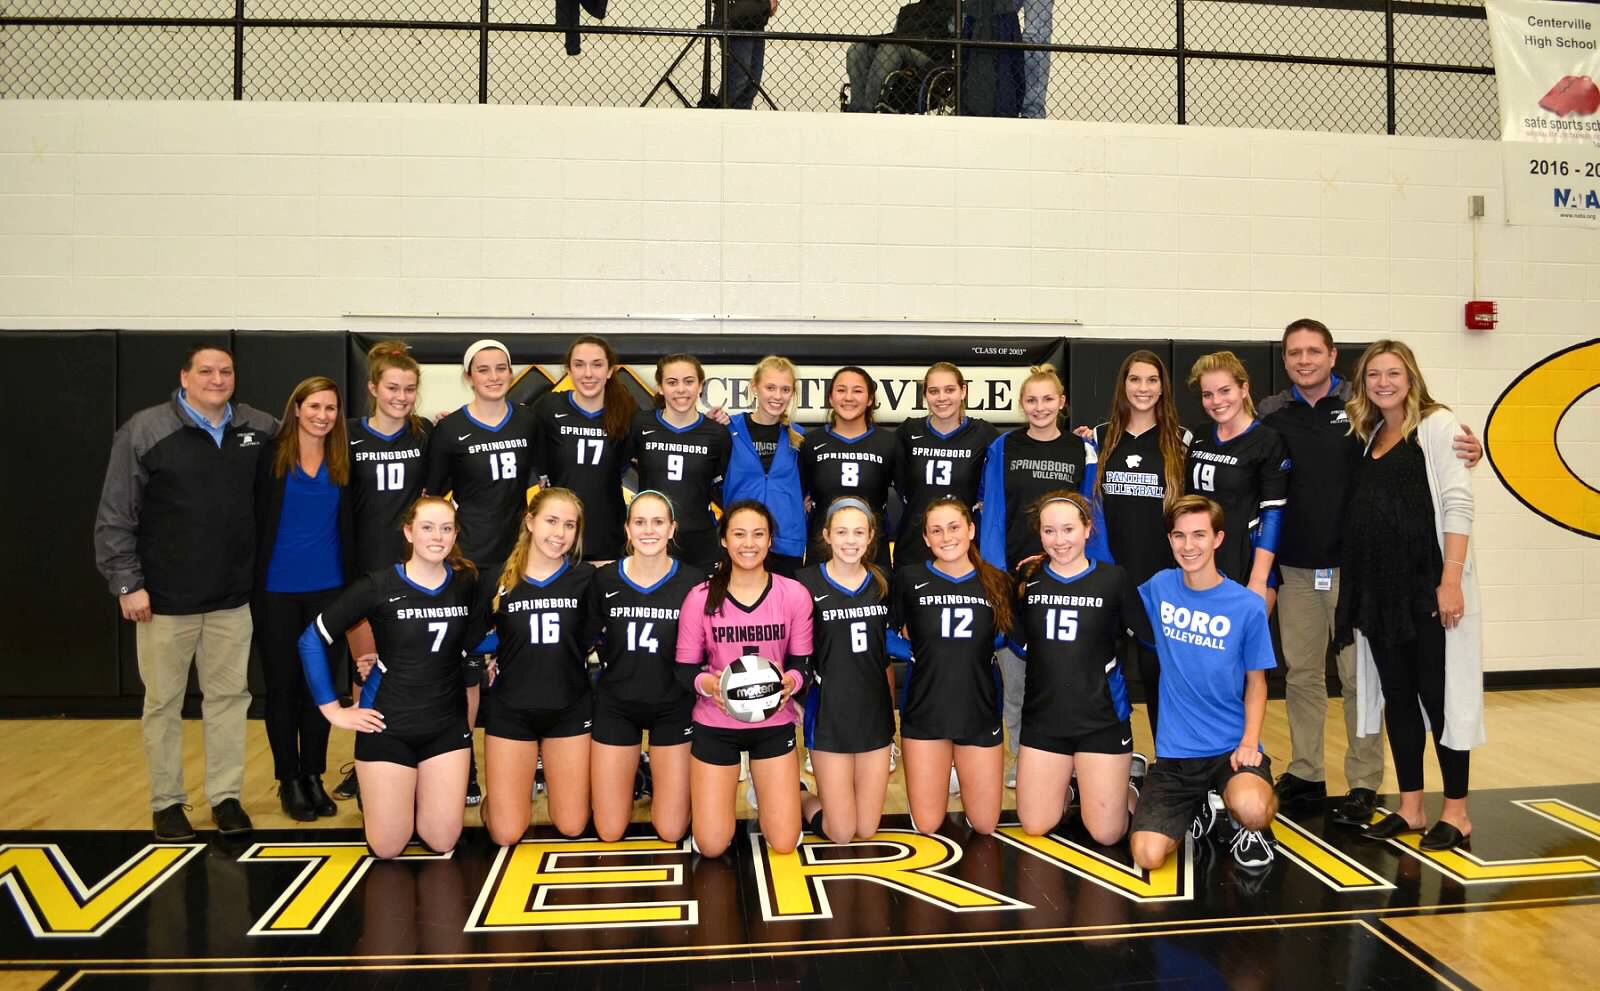 Volleyball Defeats Centerville, Advances to District Finals